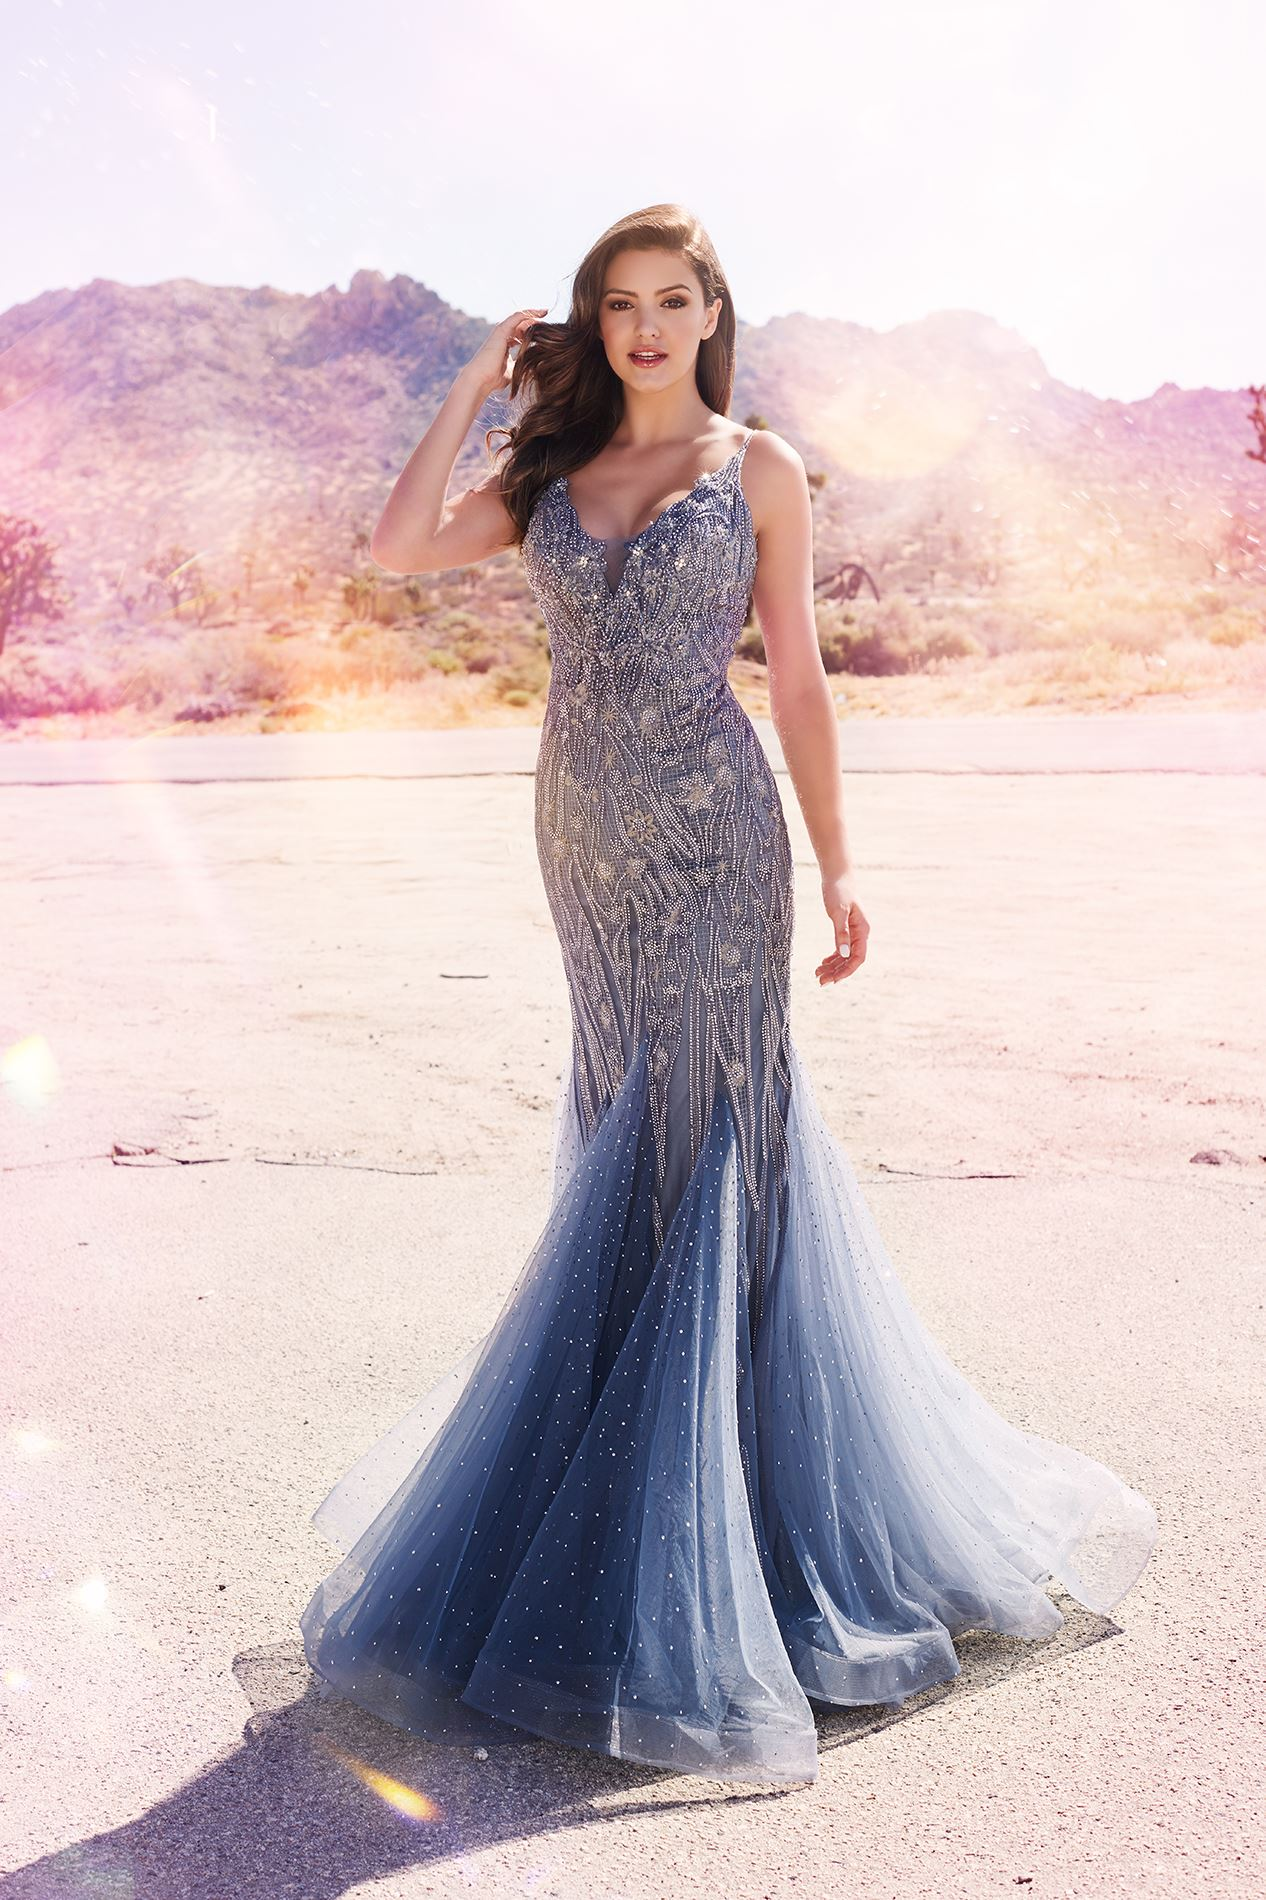 Brunette model in long gray prom dress in desert